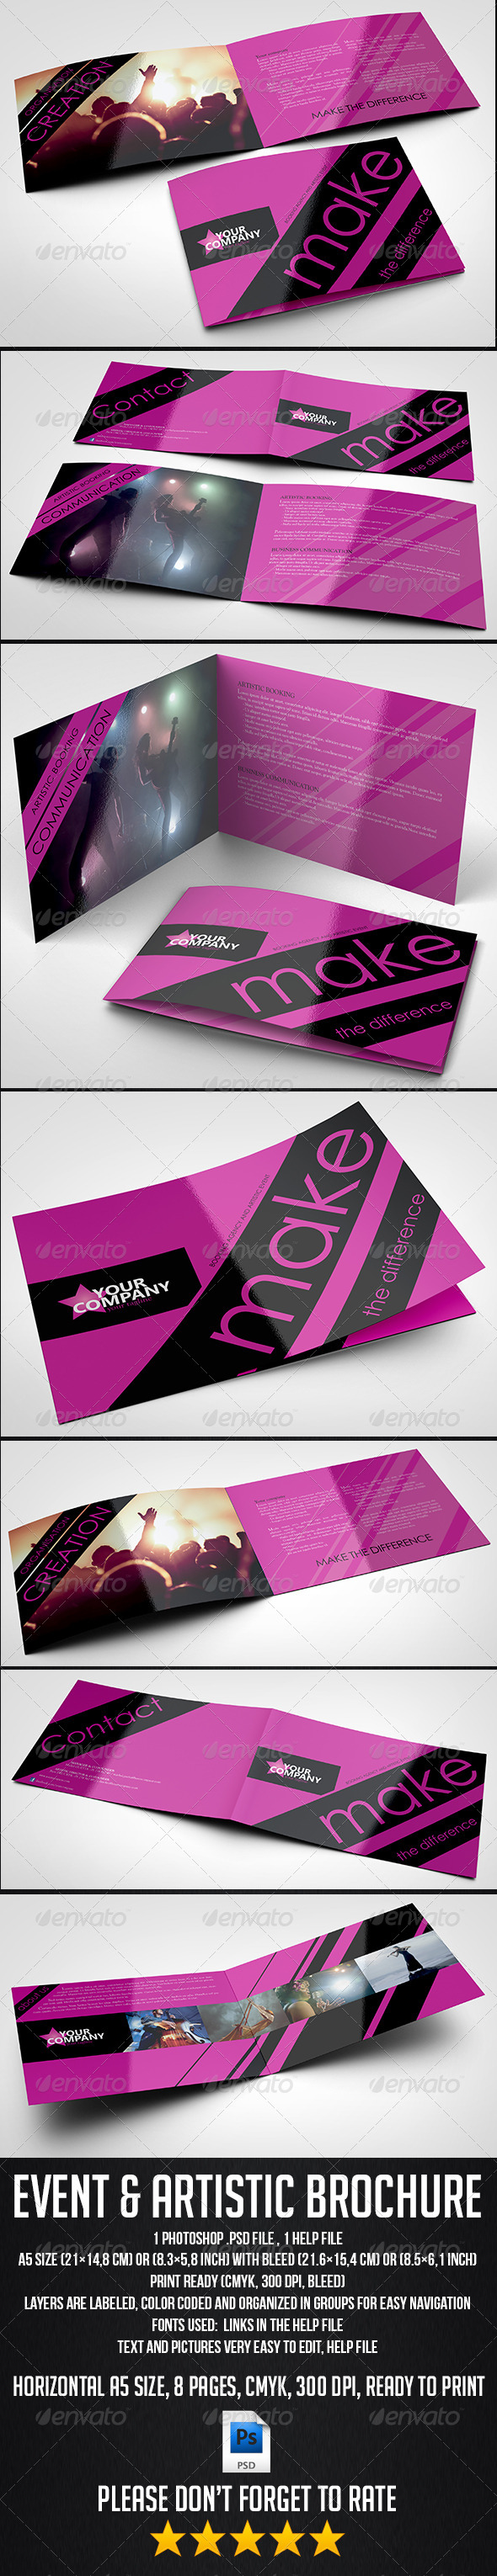 GraphicRiver A5 8 Pages Event and Artistic Brochure 6473952